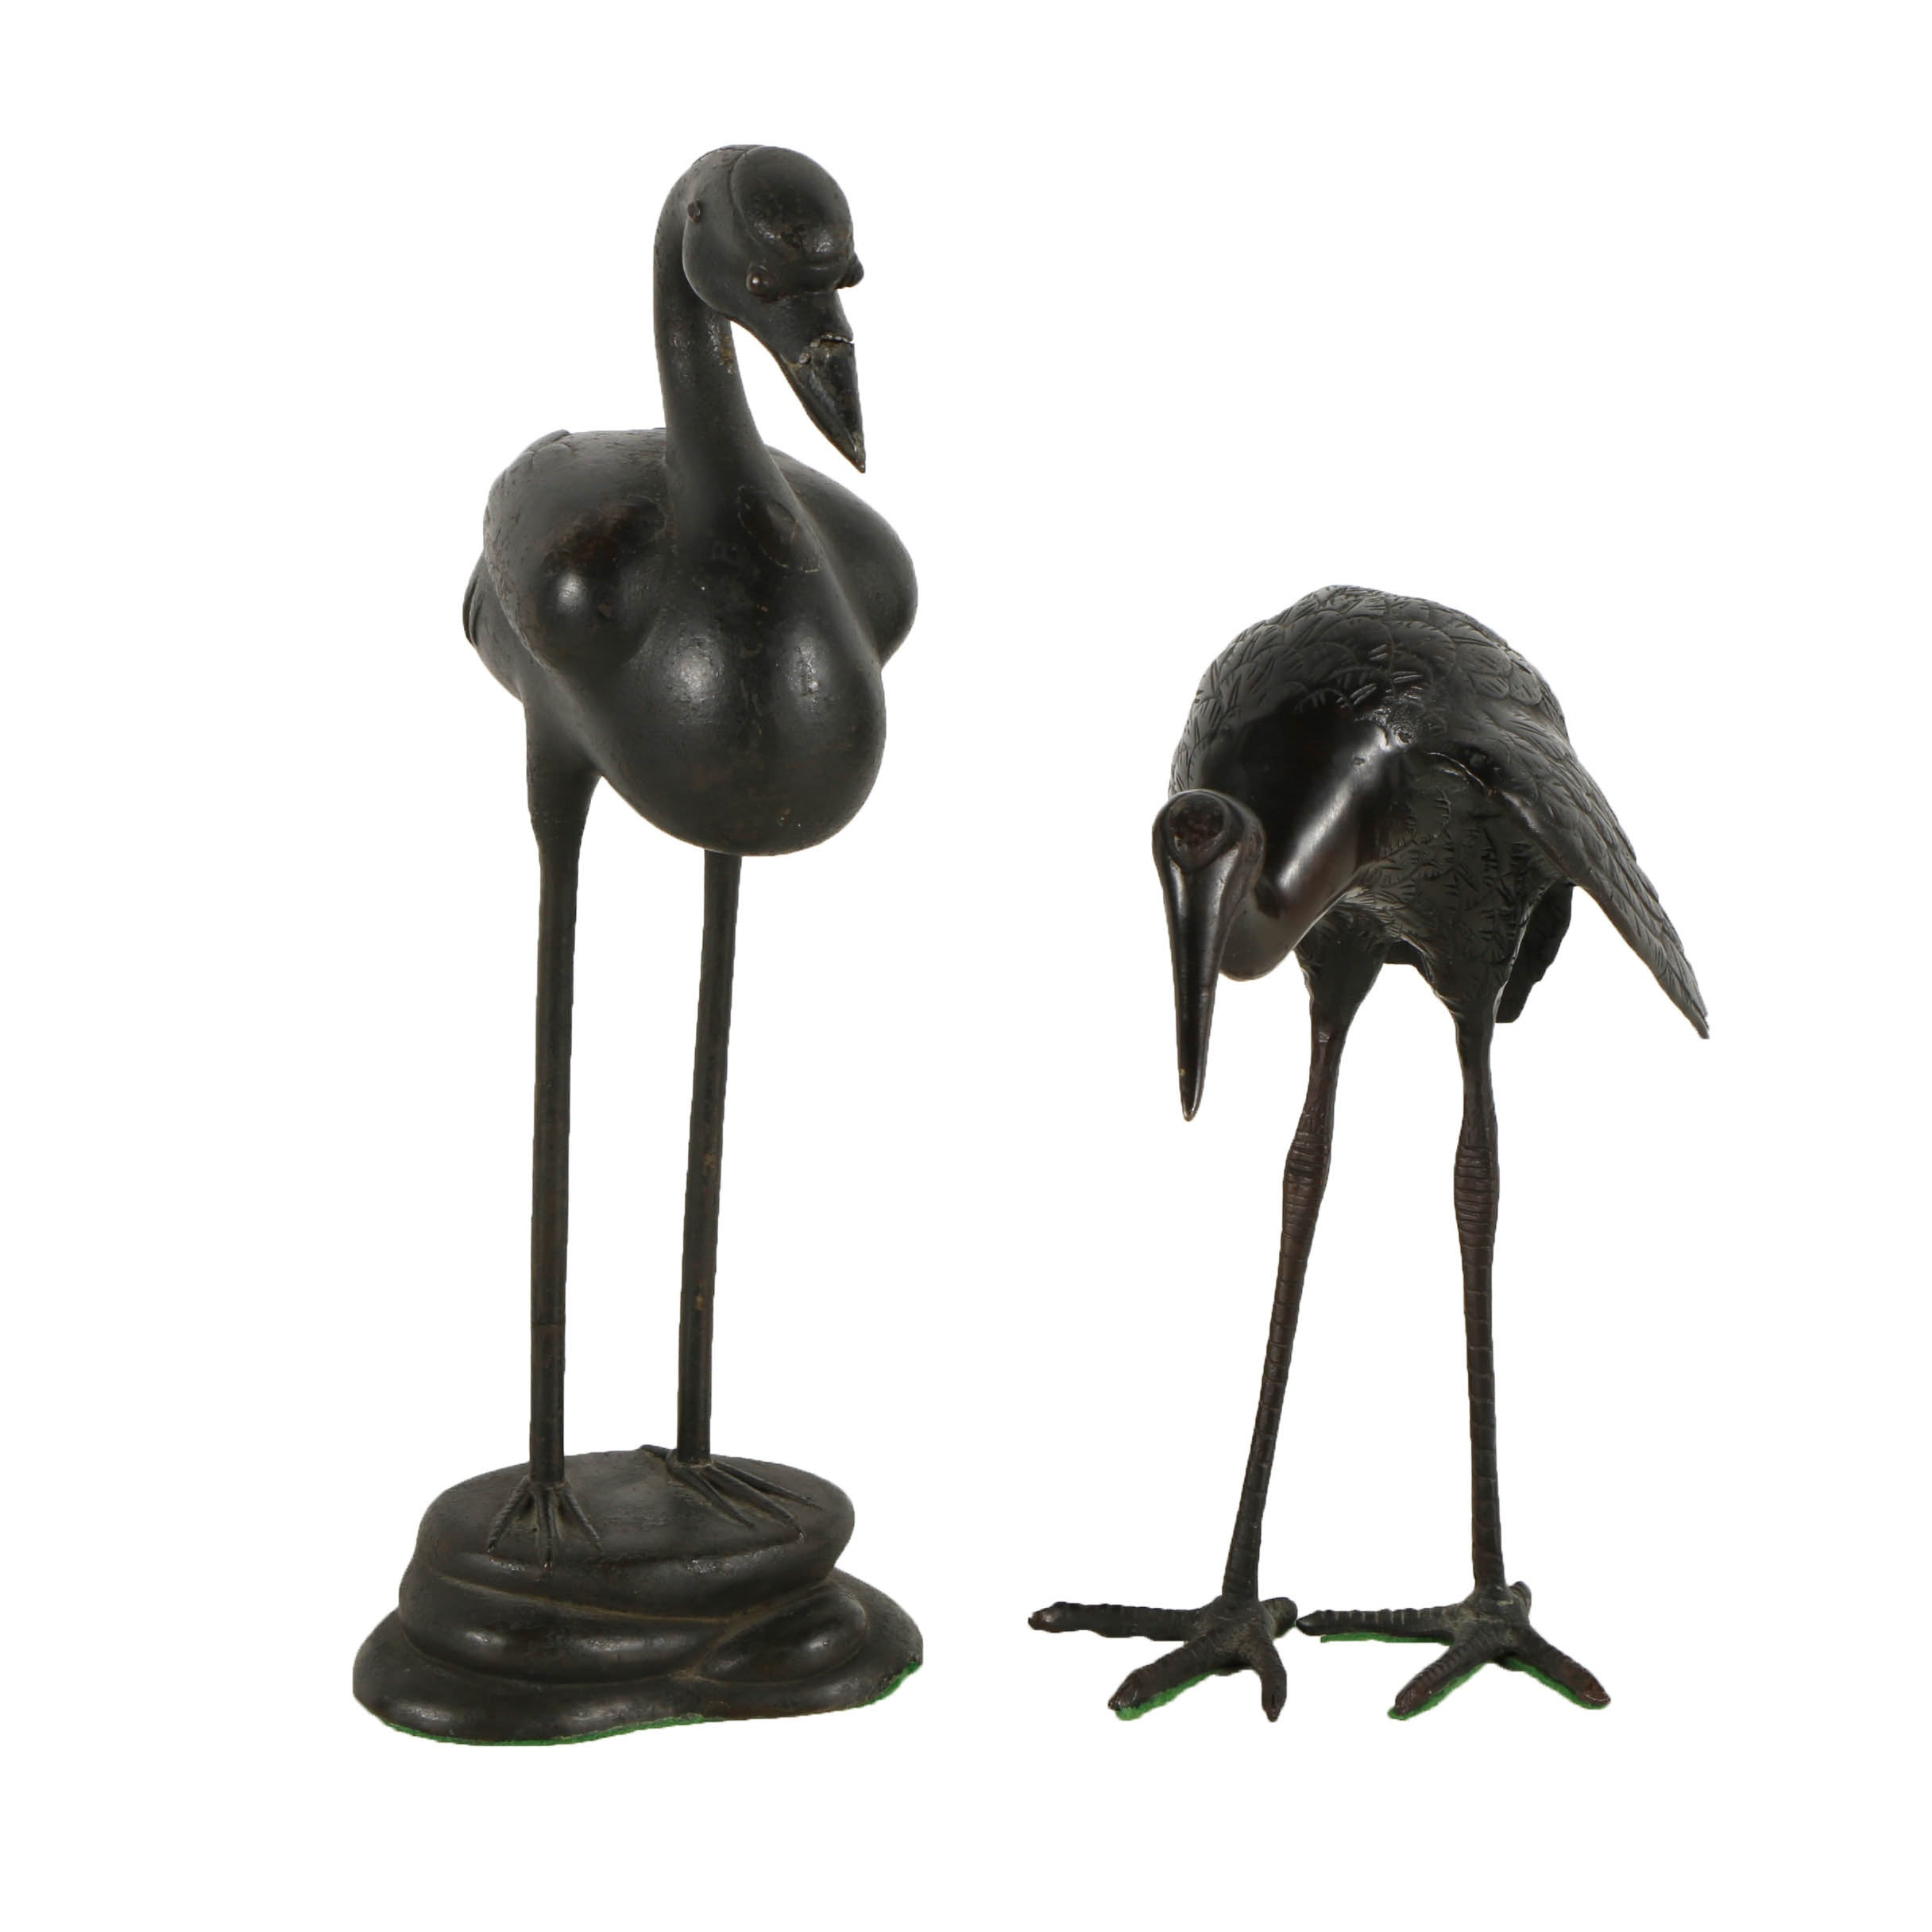 Zinc and Copper Sculptures of Cranes